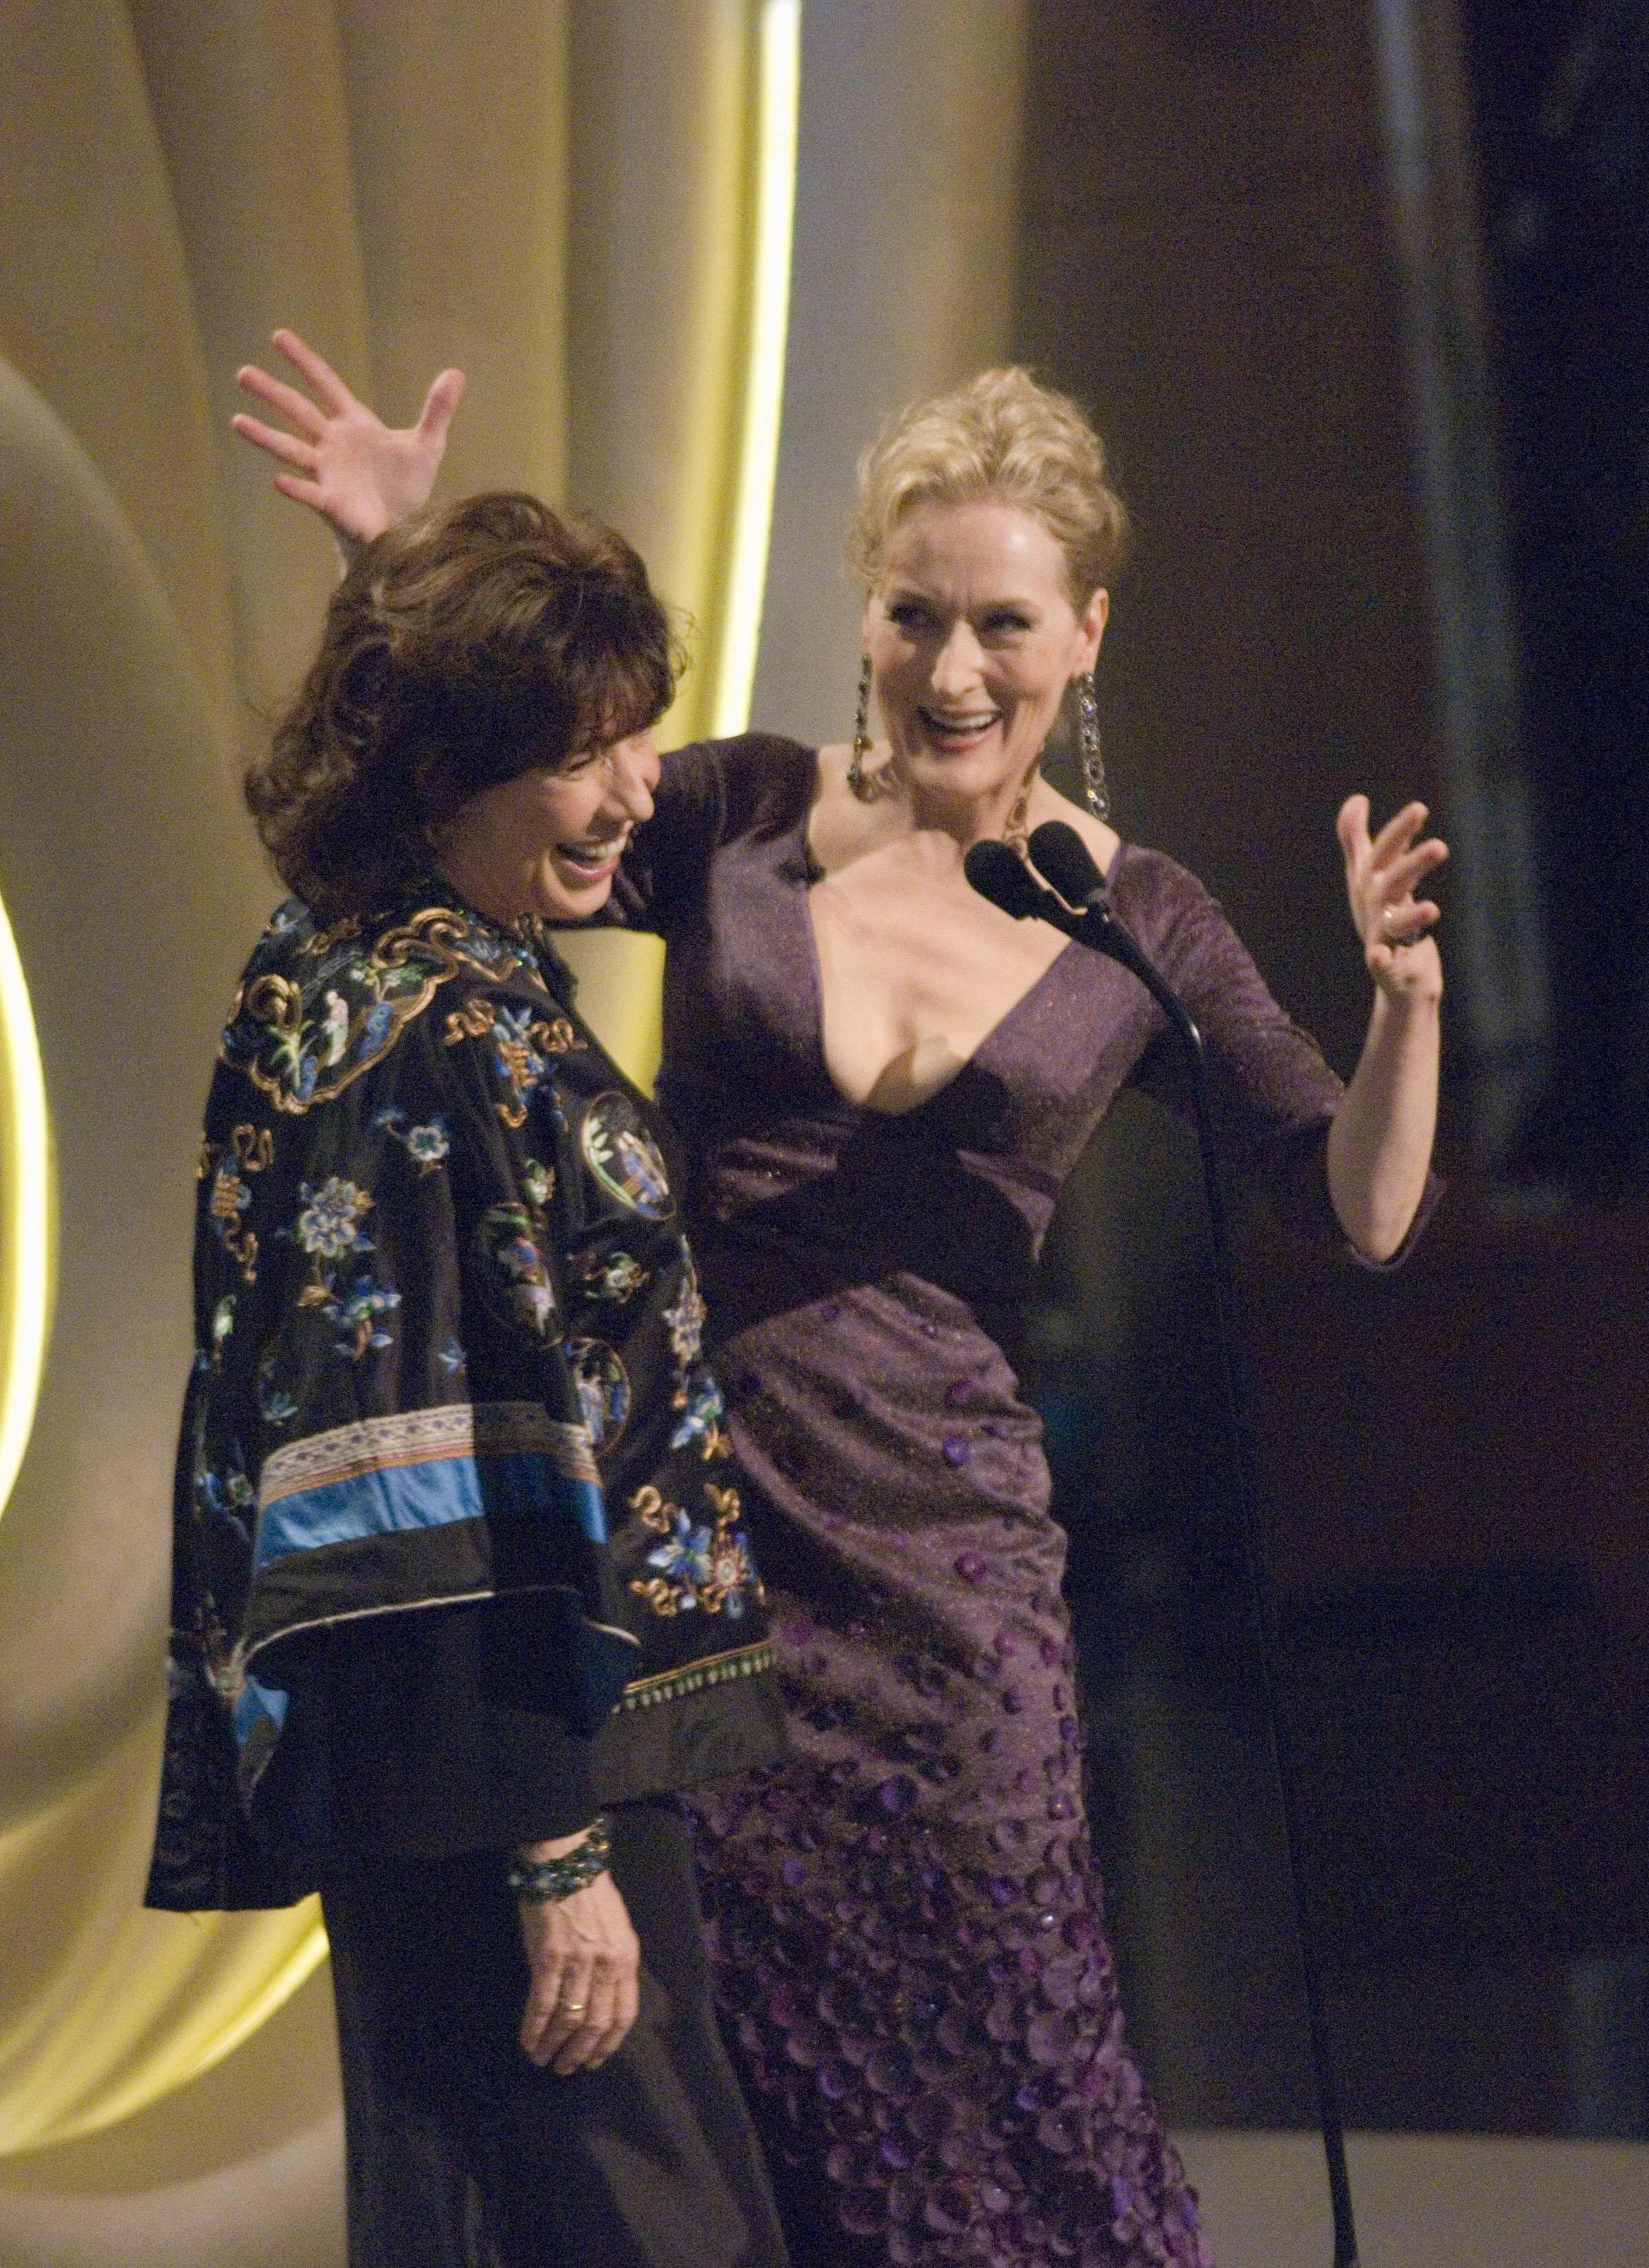 Lily Tomlin and Meryl Streep presented the Honorary Award to Robert Altman.